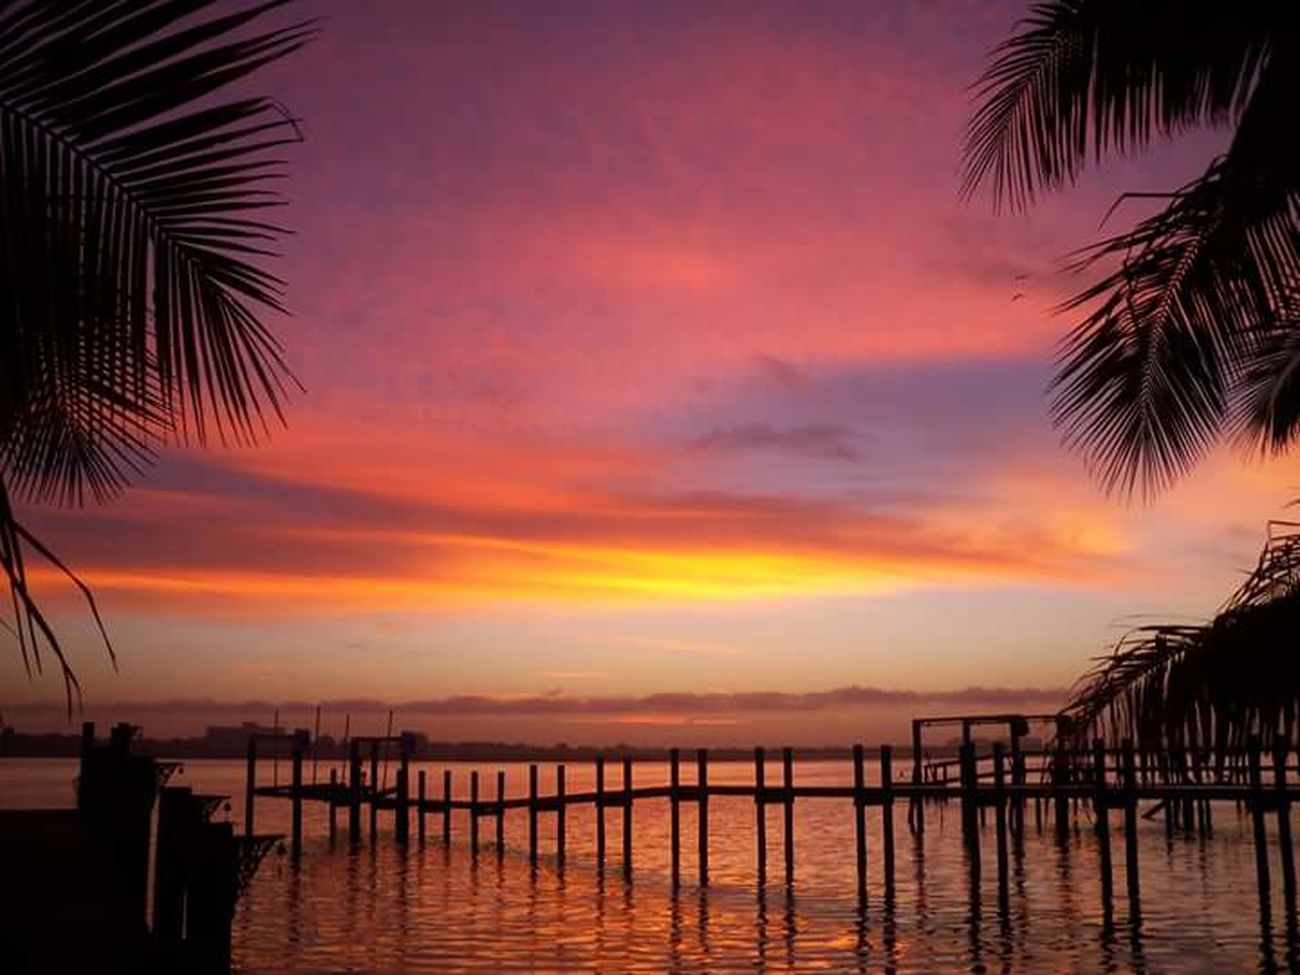 Hello 2016. First Sunrise 2016 Happy New Year 2016 Gorgeous Sky Brand New Day Brand New Year Docks Orange Sky January 1 2016 Peace To The World Outdoor Photography Beach Photography